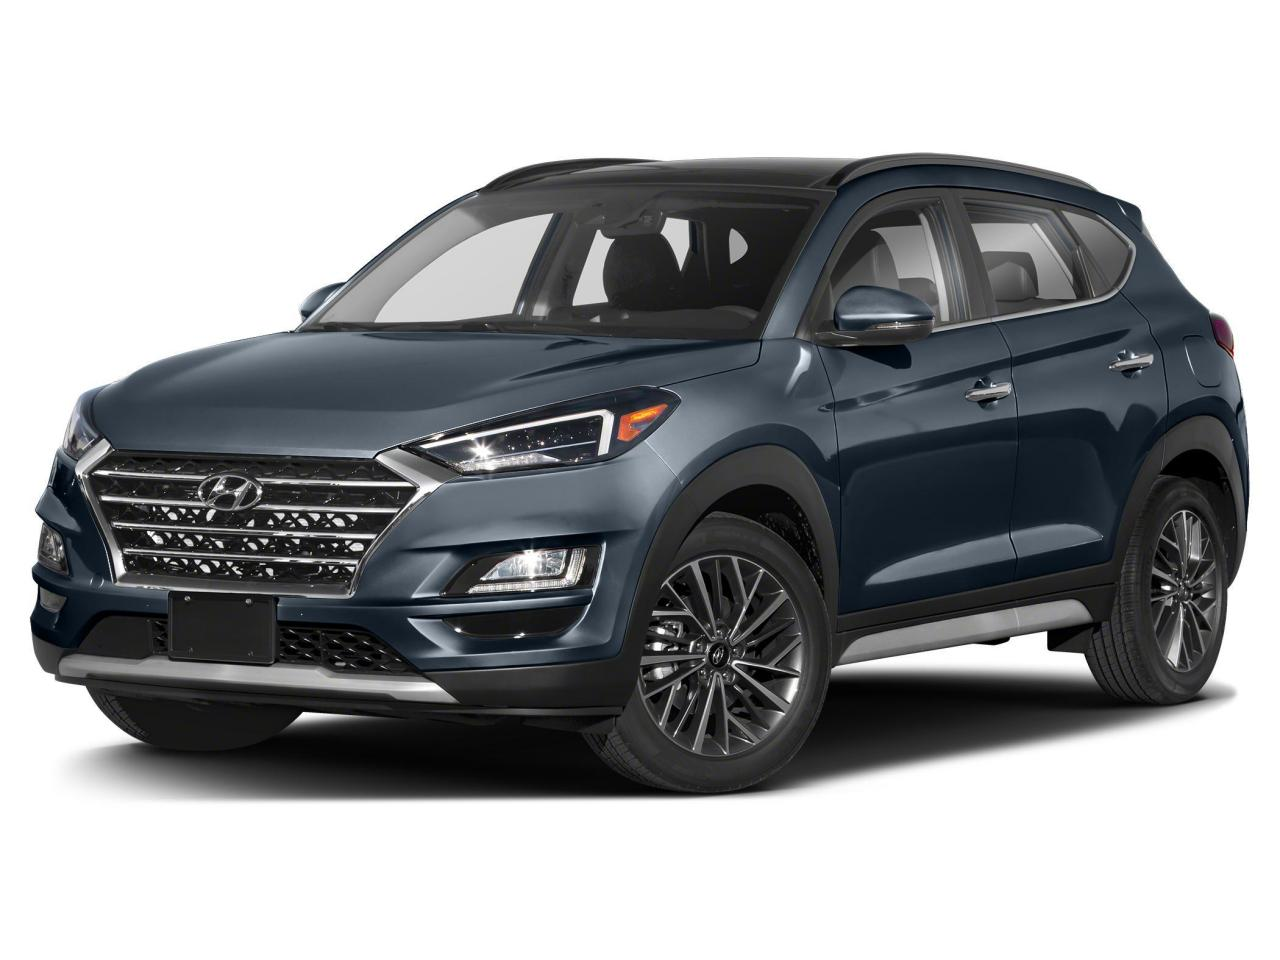 2021 Hyundai Tucson 2.4L AWD Ultimate NO OPTIONS